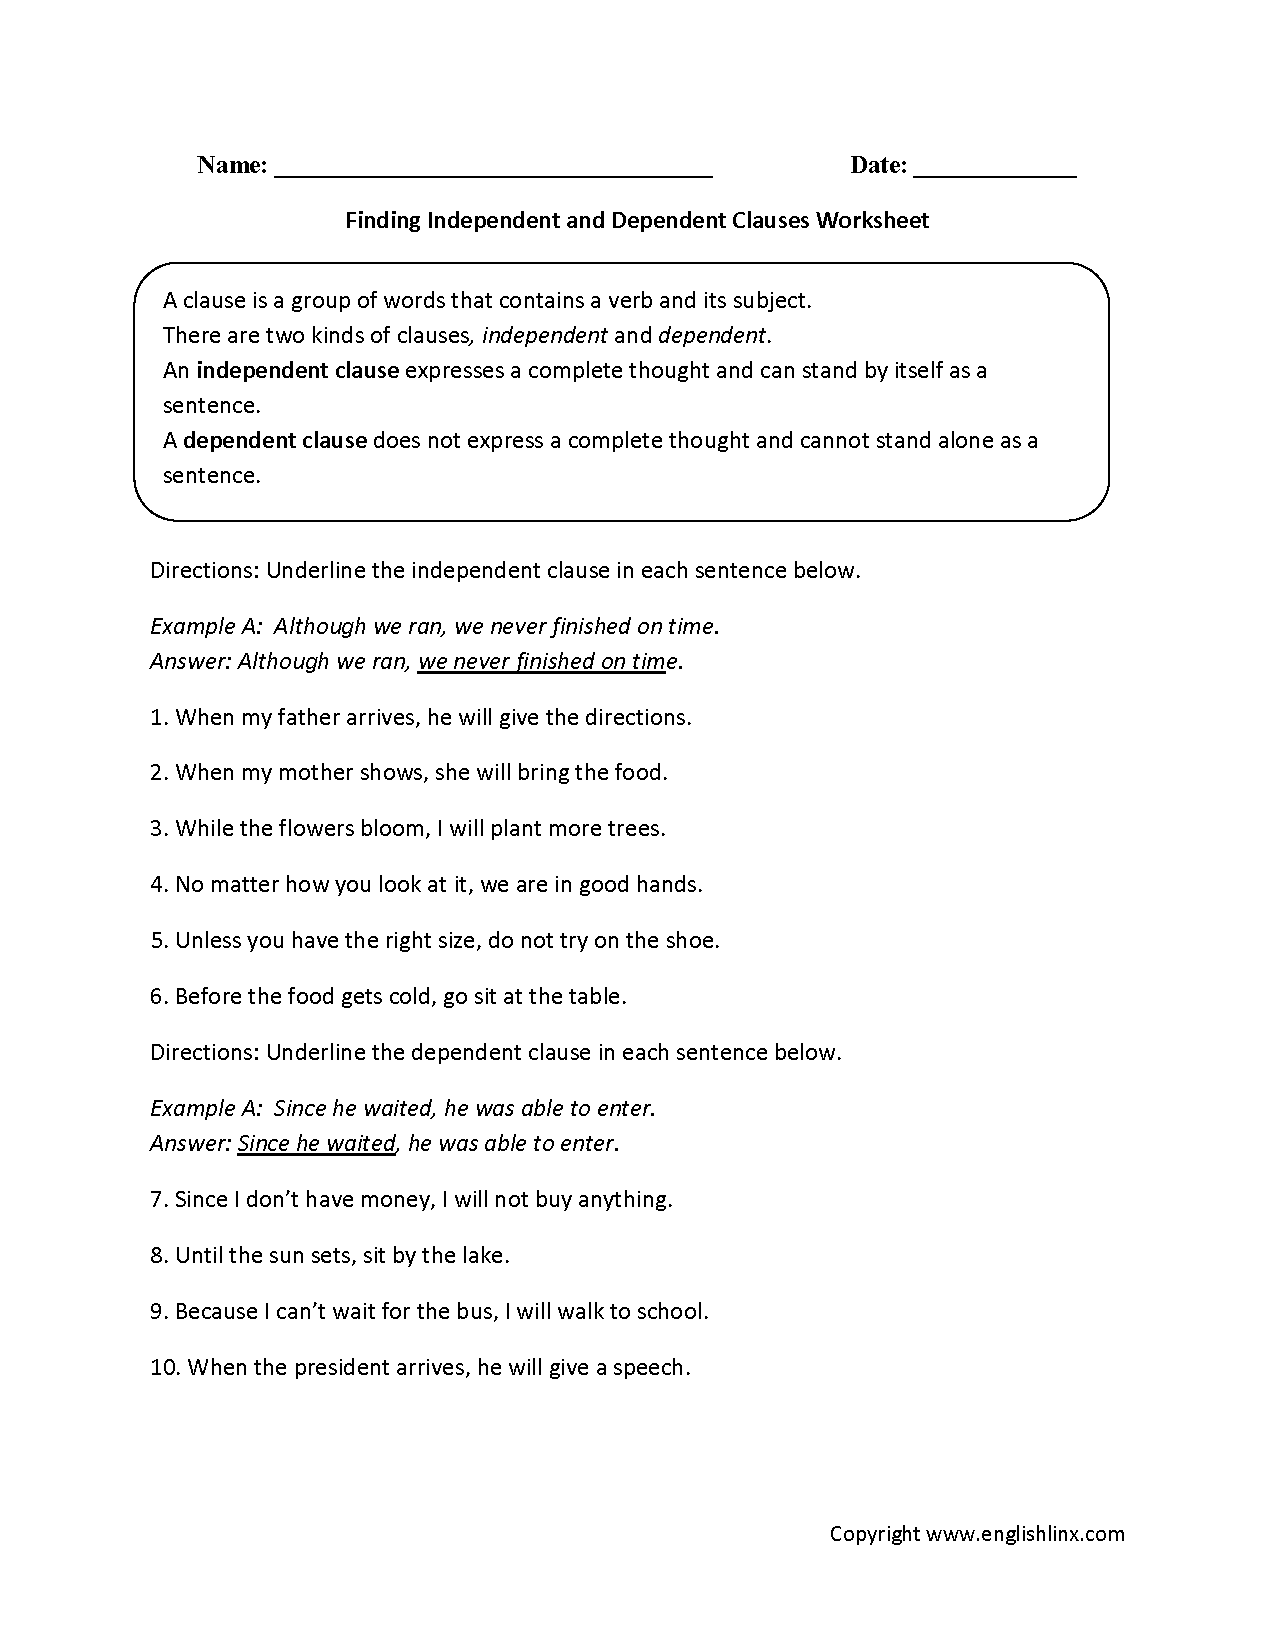 Finding Independent And Dependent Clauses Worksheet Education